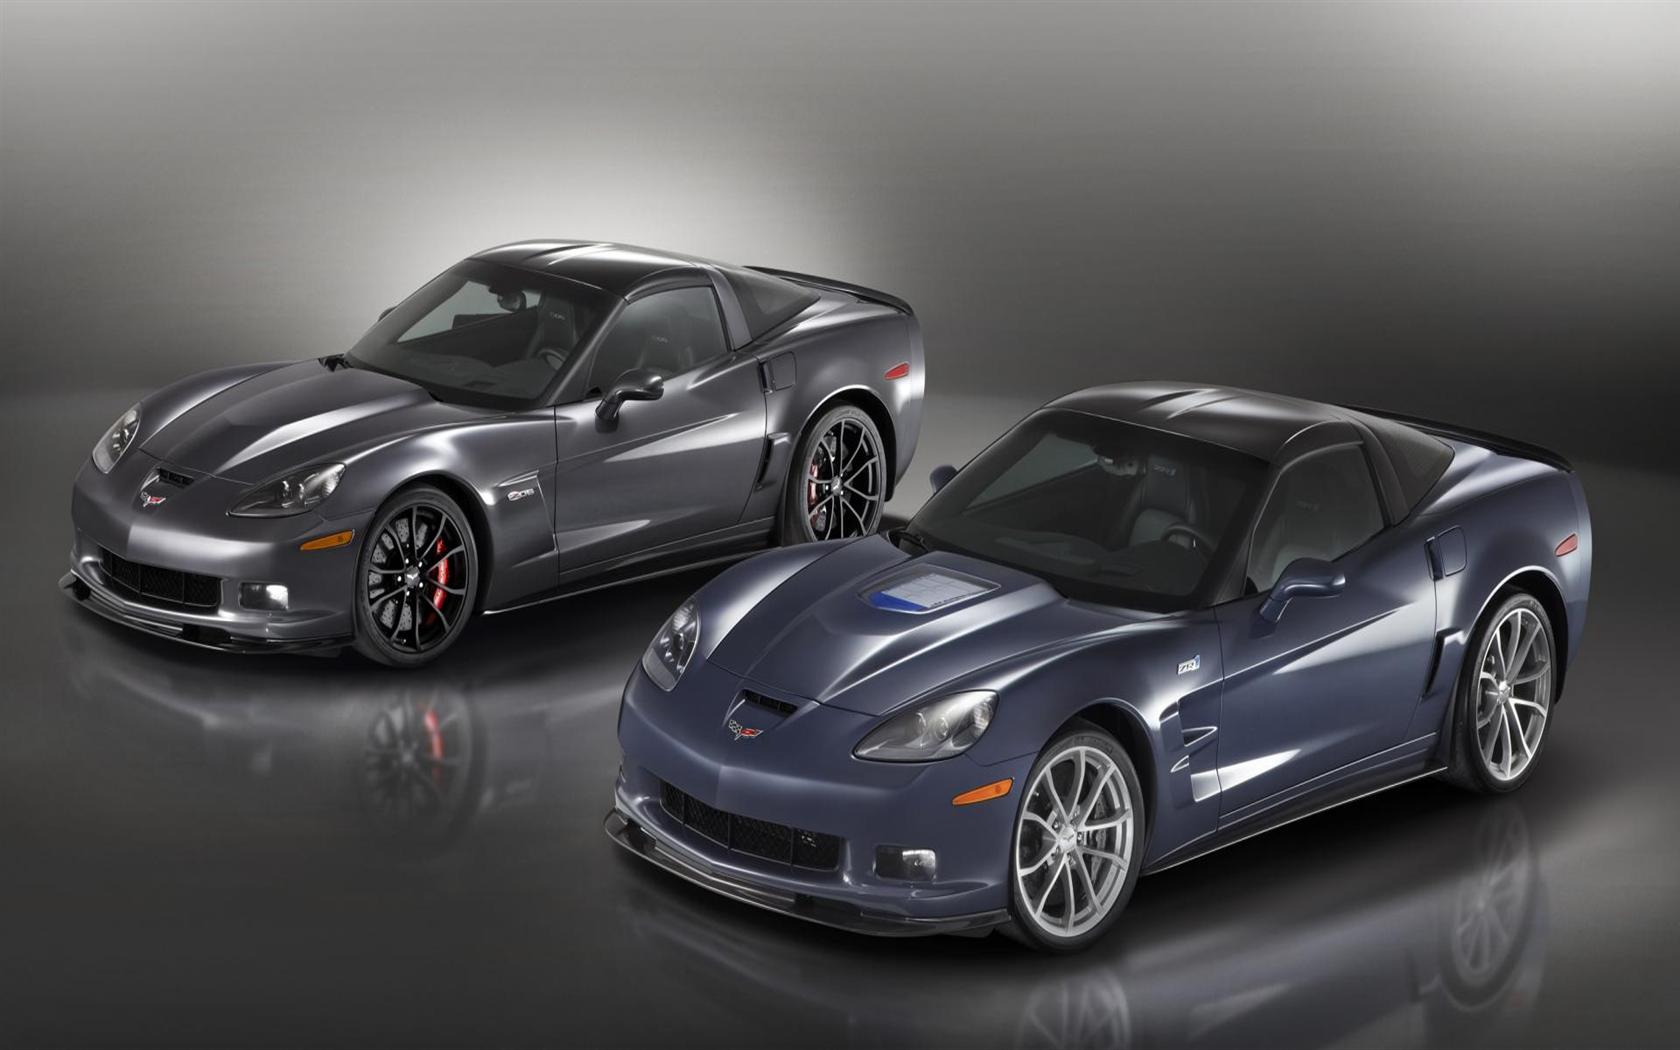 2013 chevrolet corvette z06 image. Black Bedroom Furniture Sets. Home Design Ideas